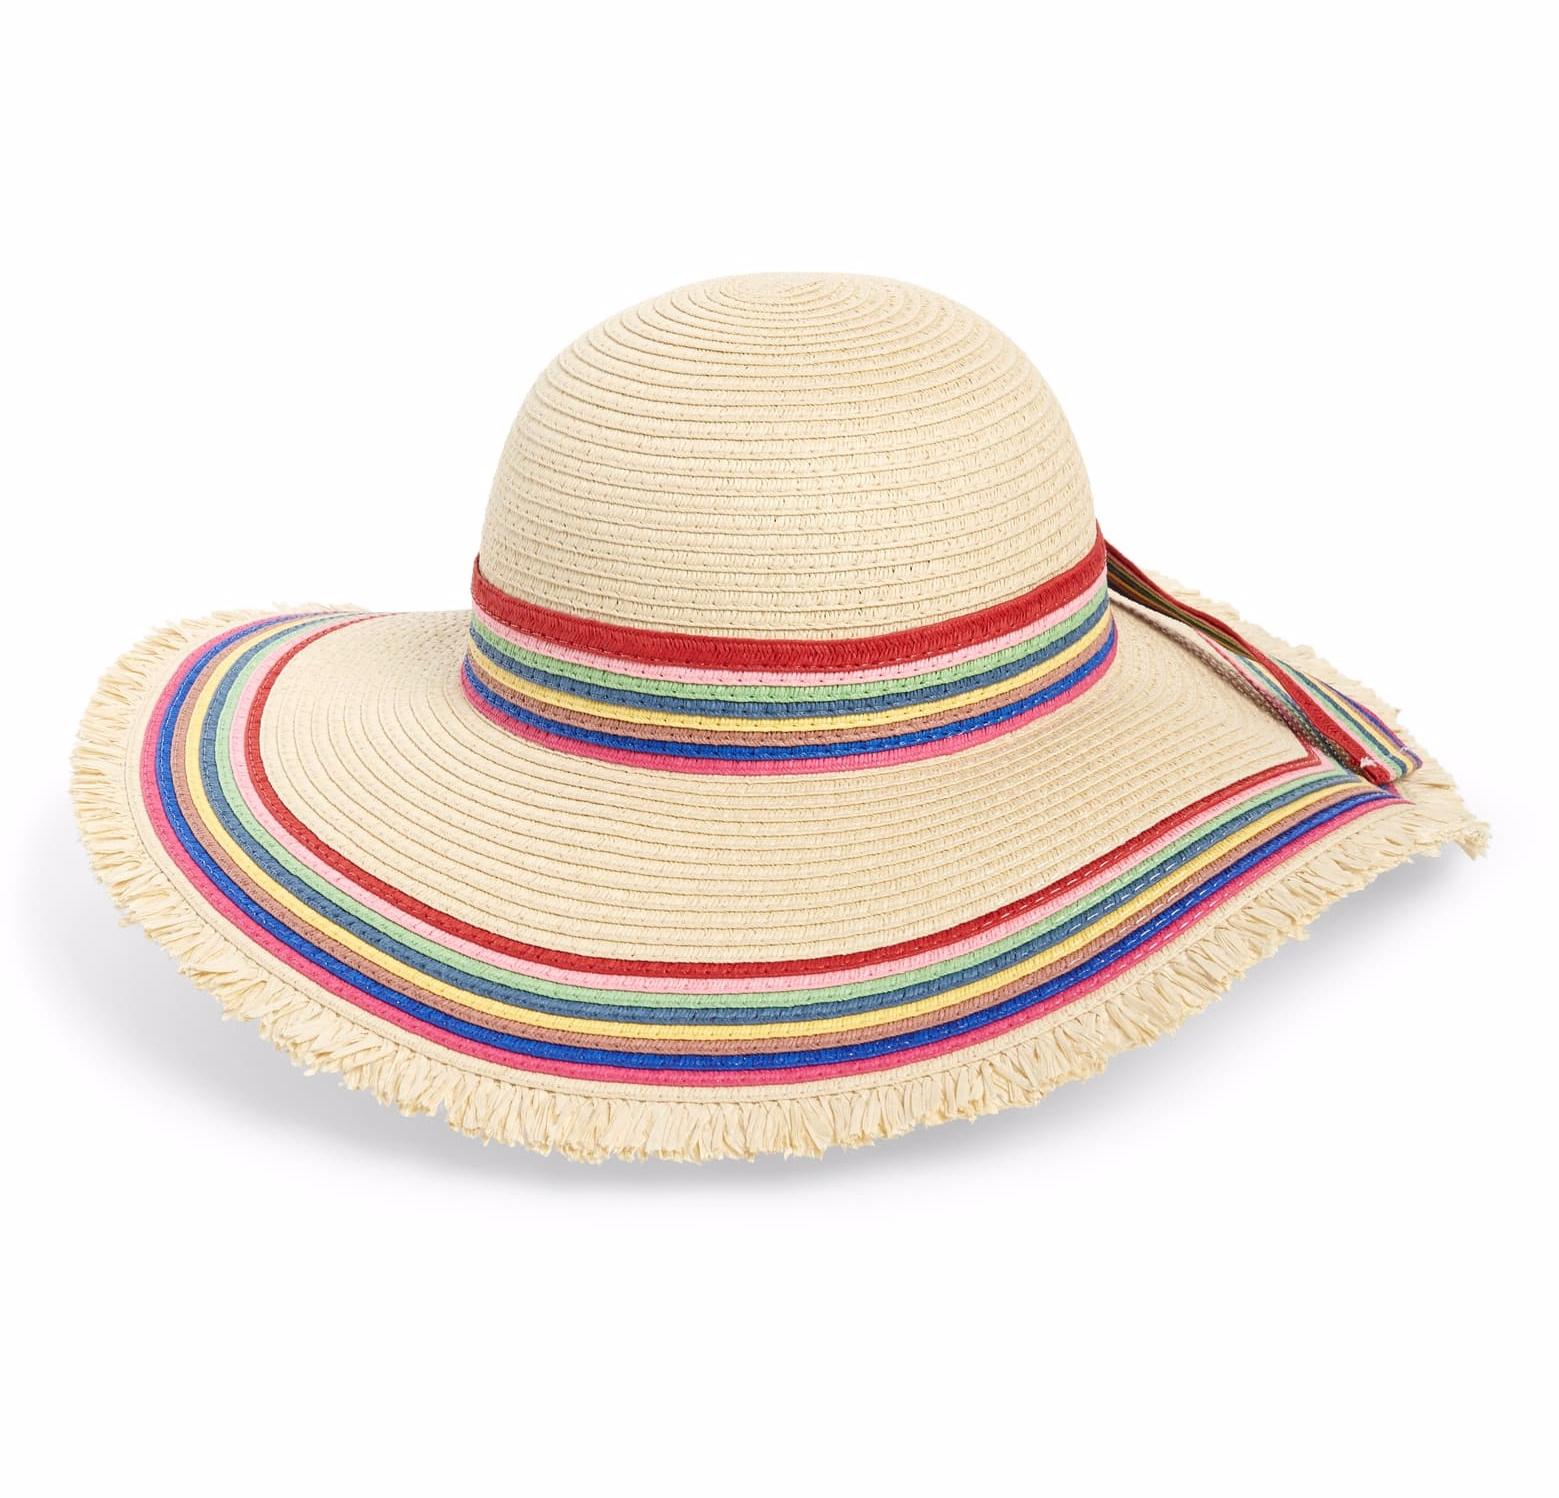 Floppy brim on a straw hat edged with feathery fringe!